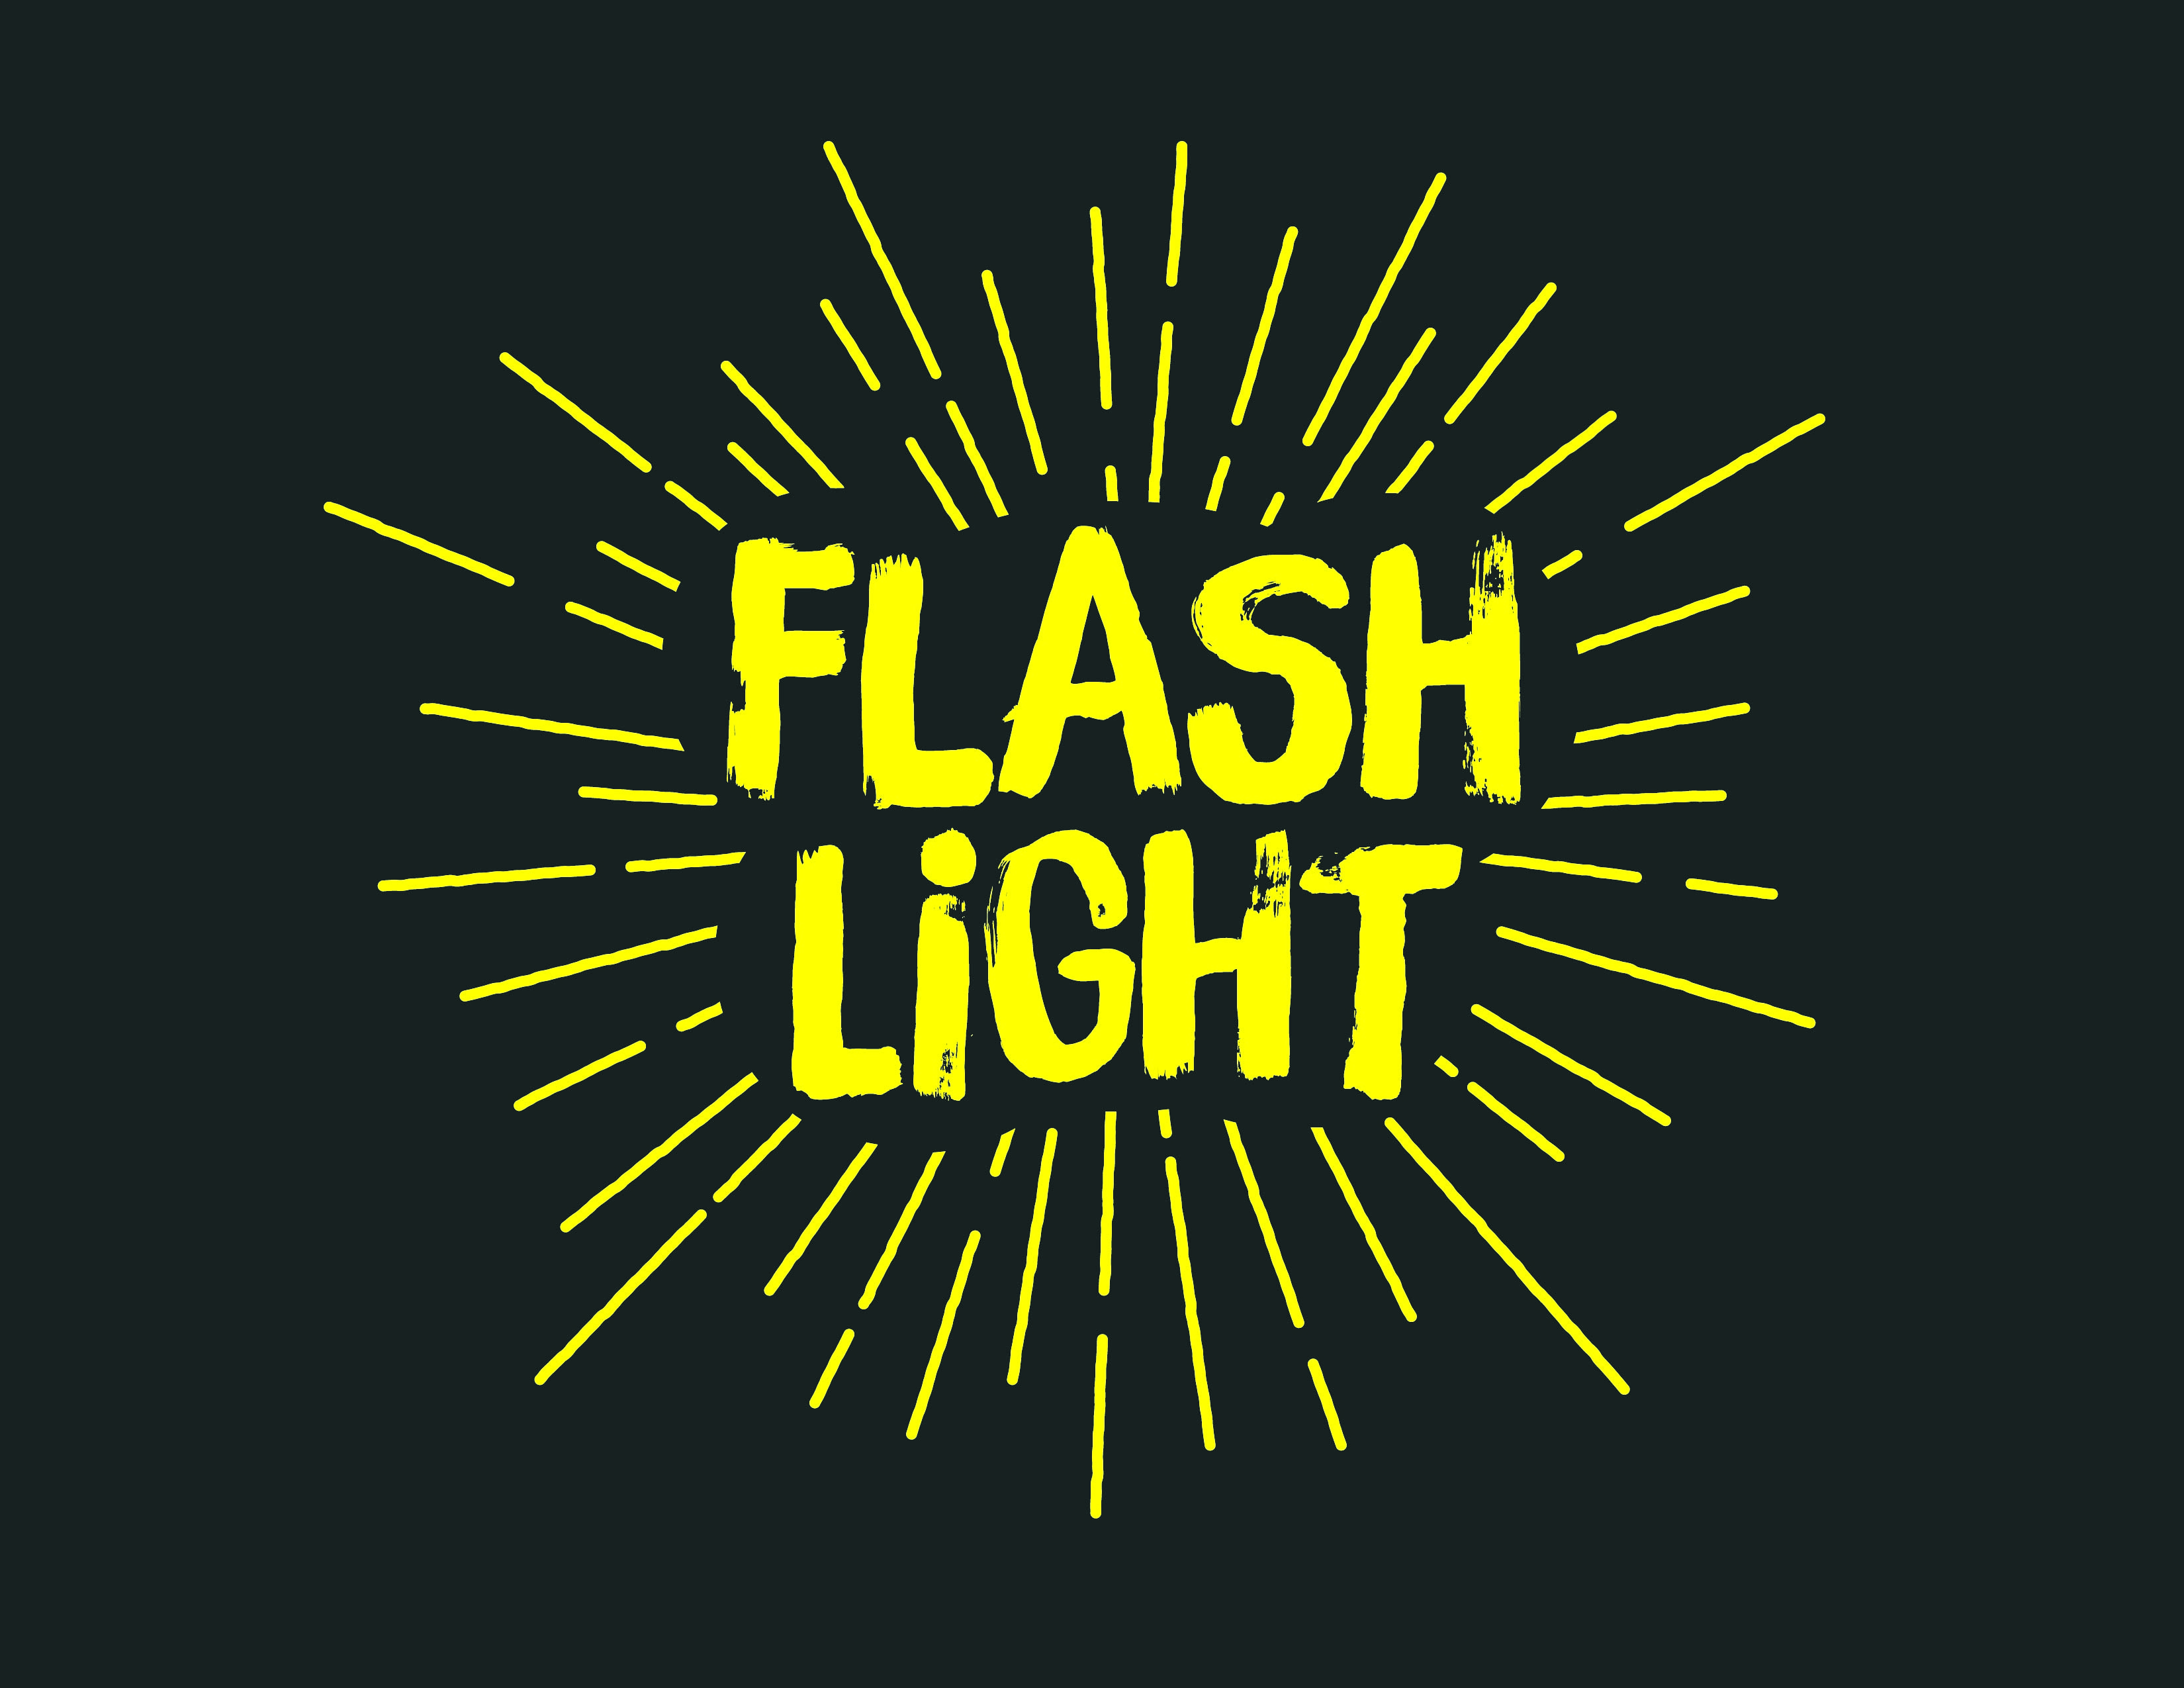 Flash a Light on Homelessness